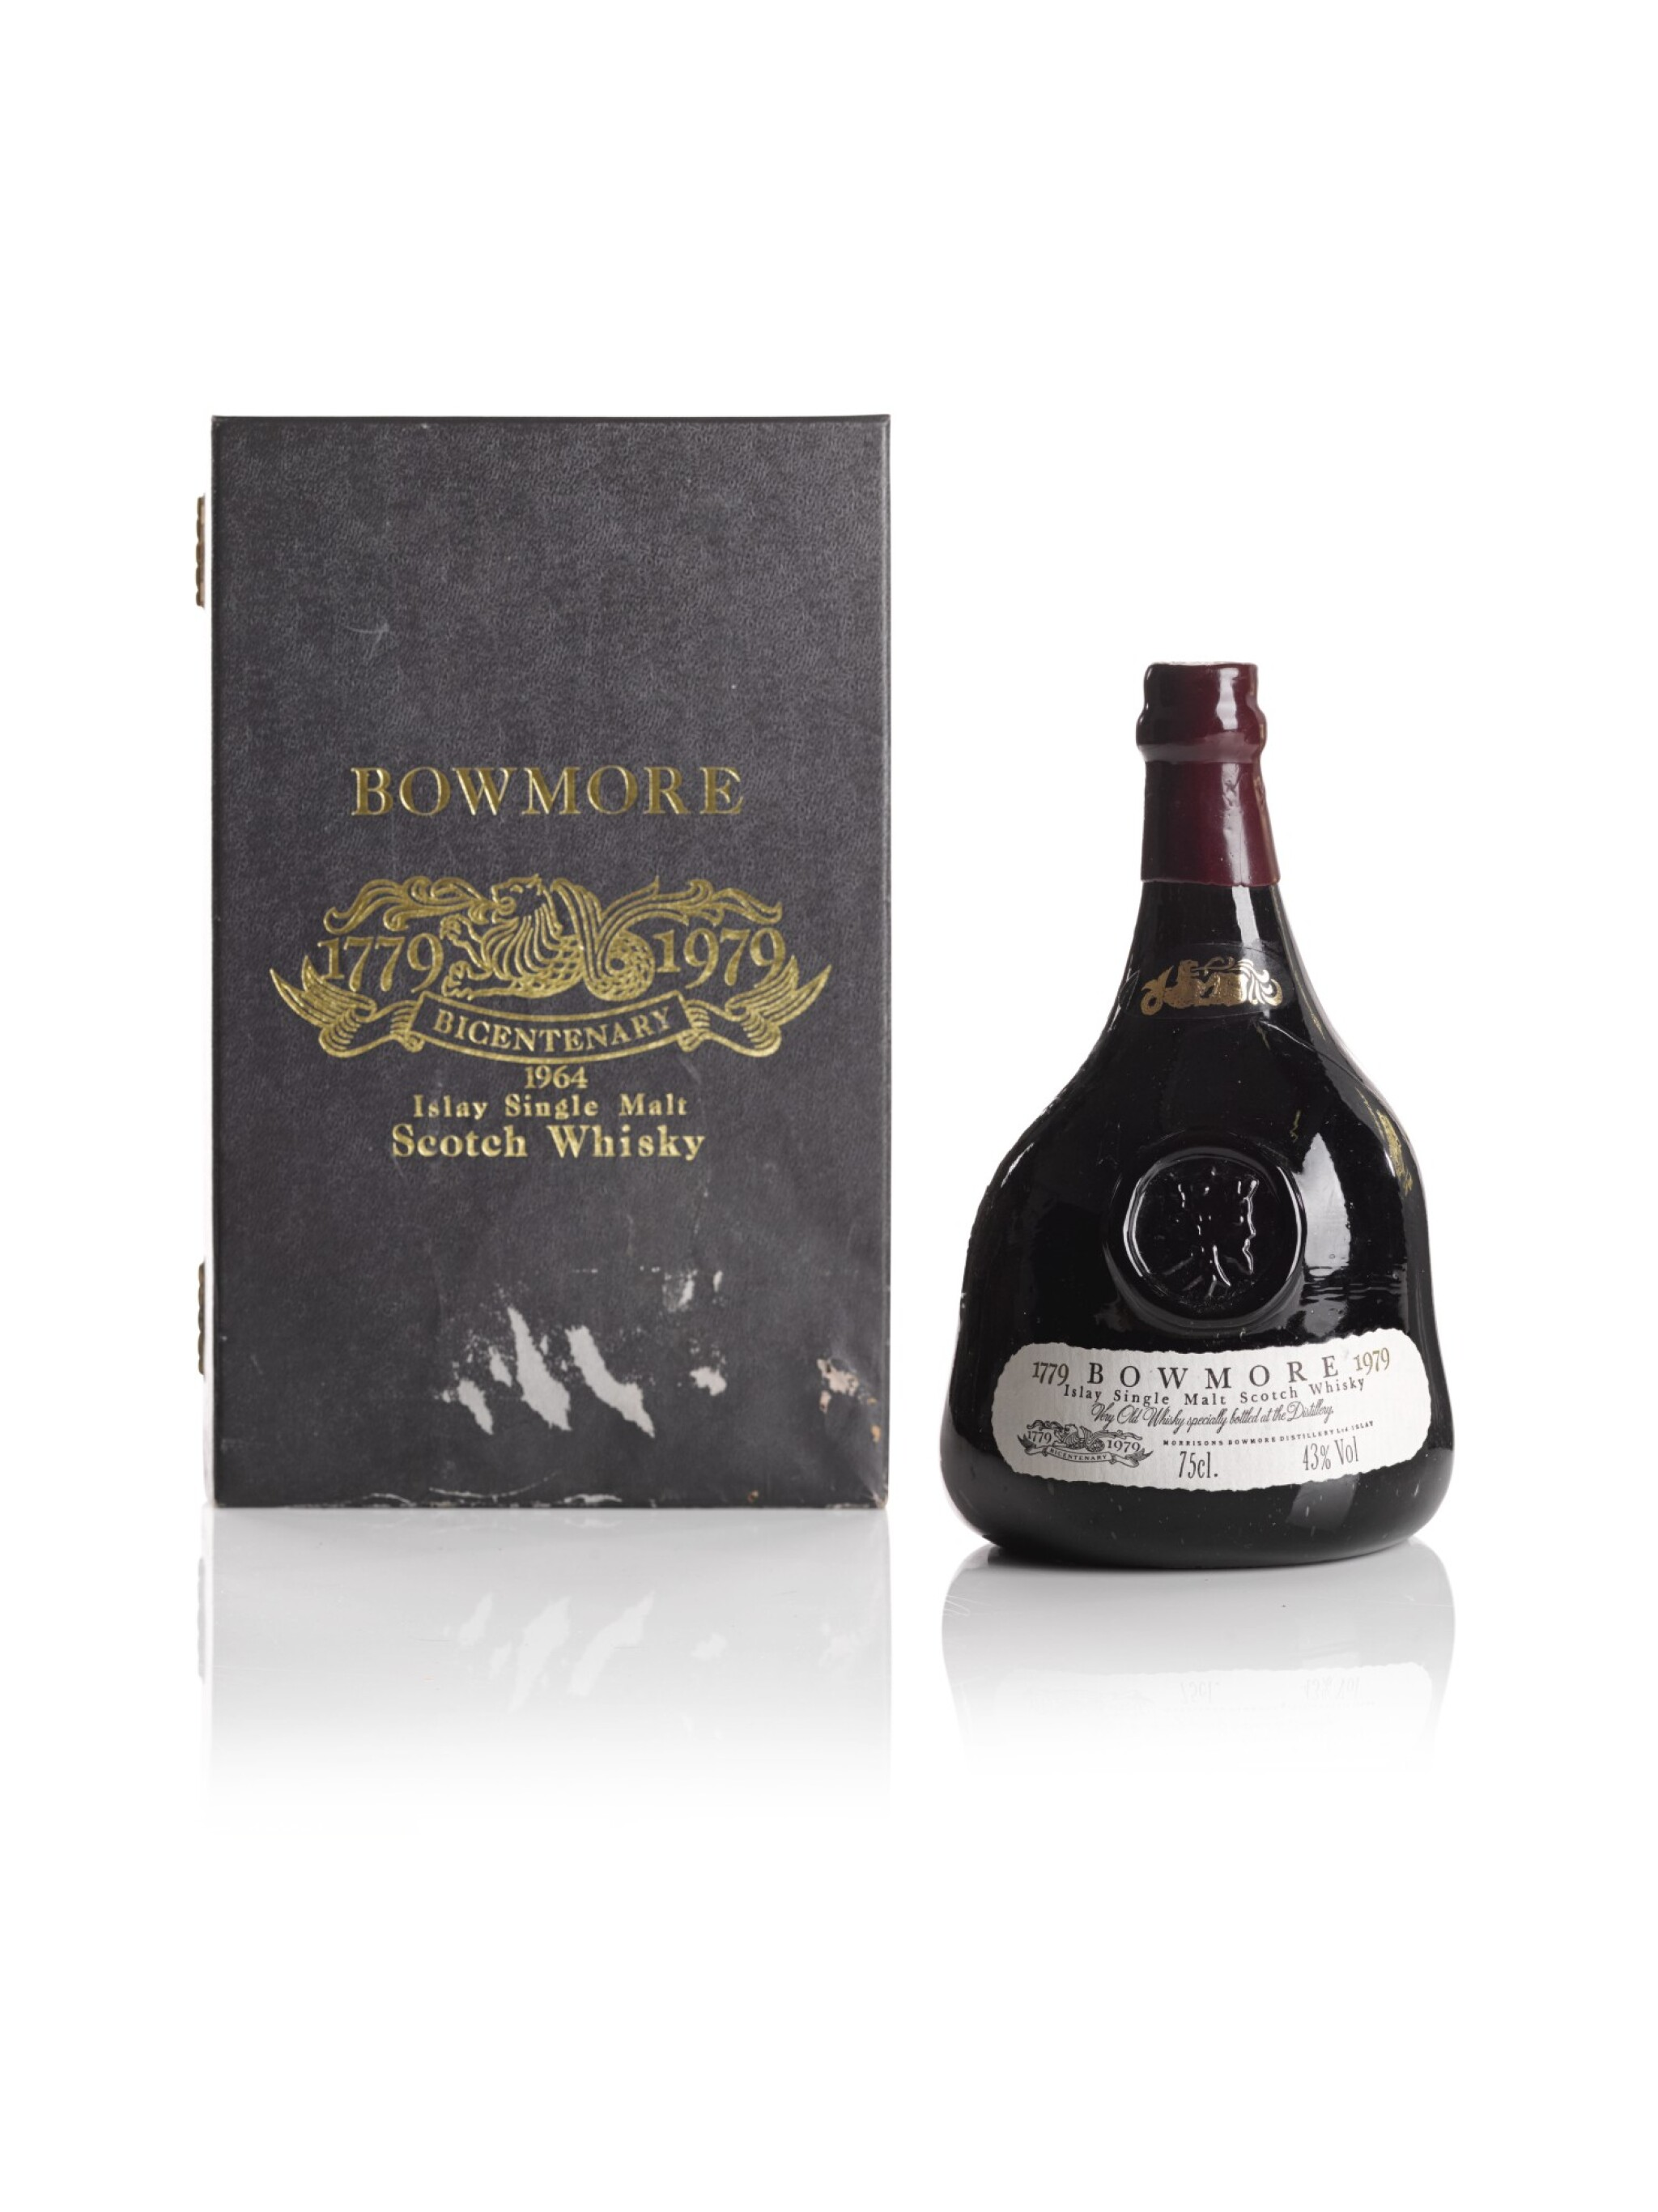 BOWMORE BICENTENARY 1779 TO 1979 43.0 ABV 1964